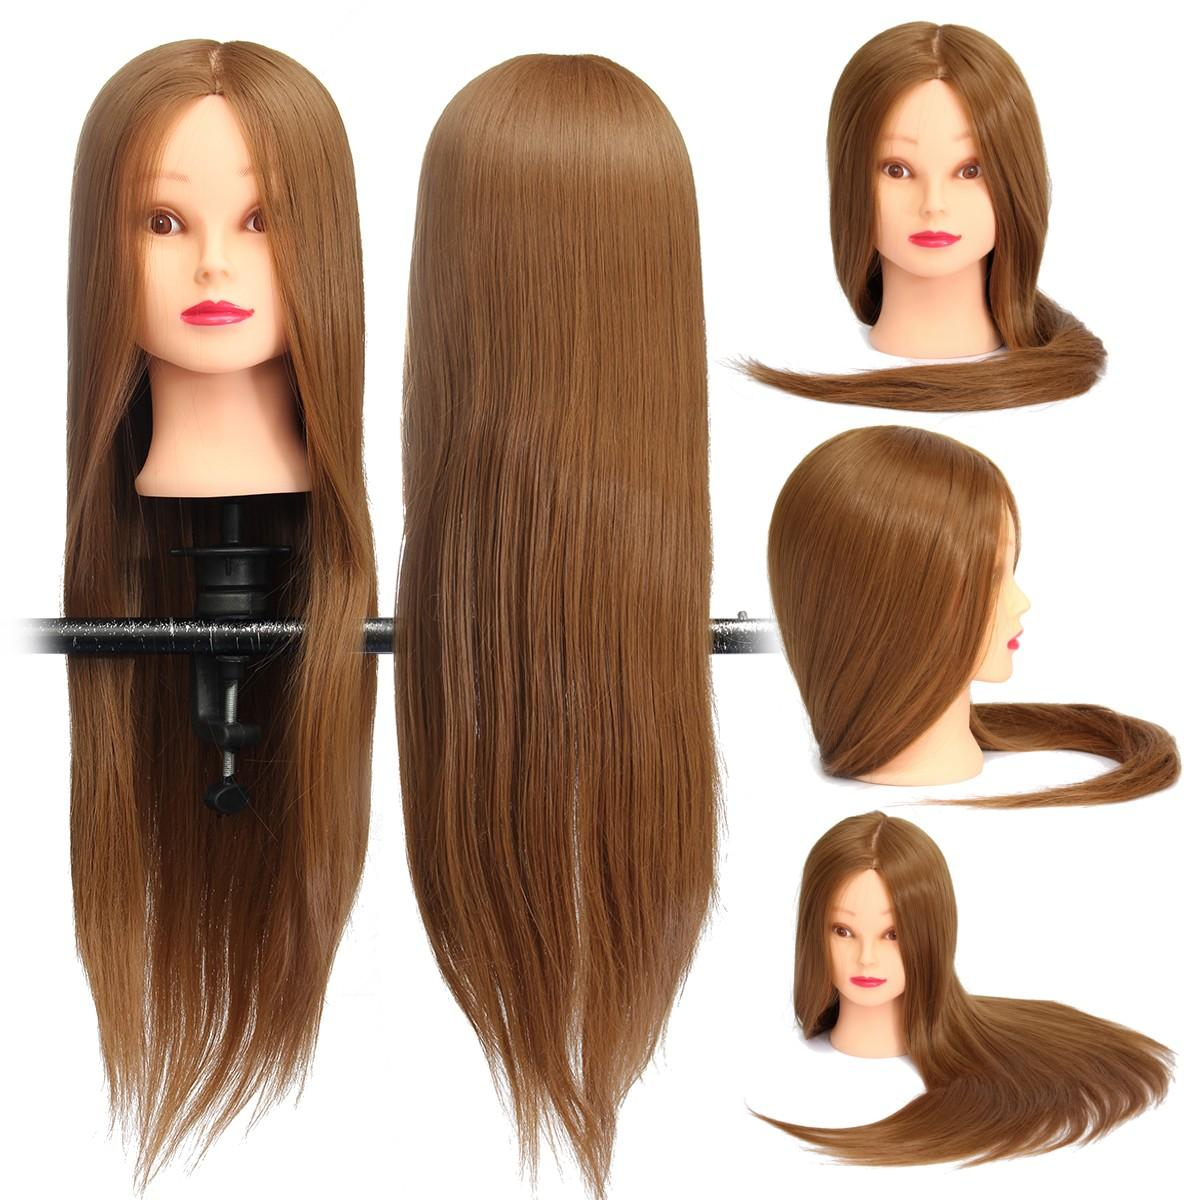 Brown 18 Inch Long Straight Hair Training Model Mannequin Practice Head Salon Cutting